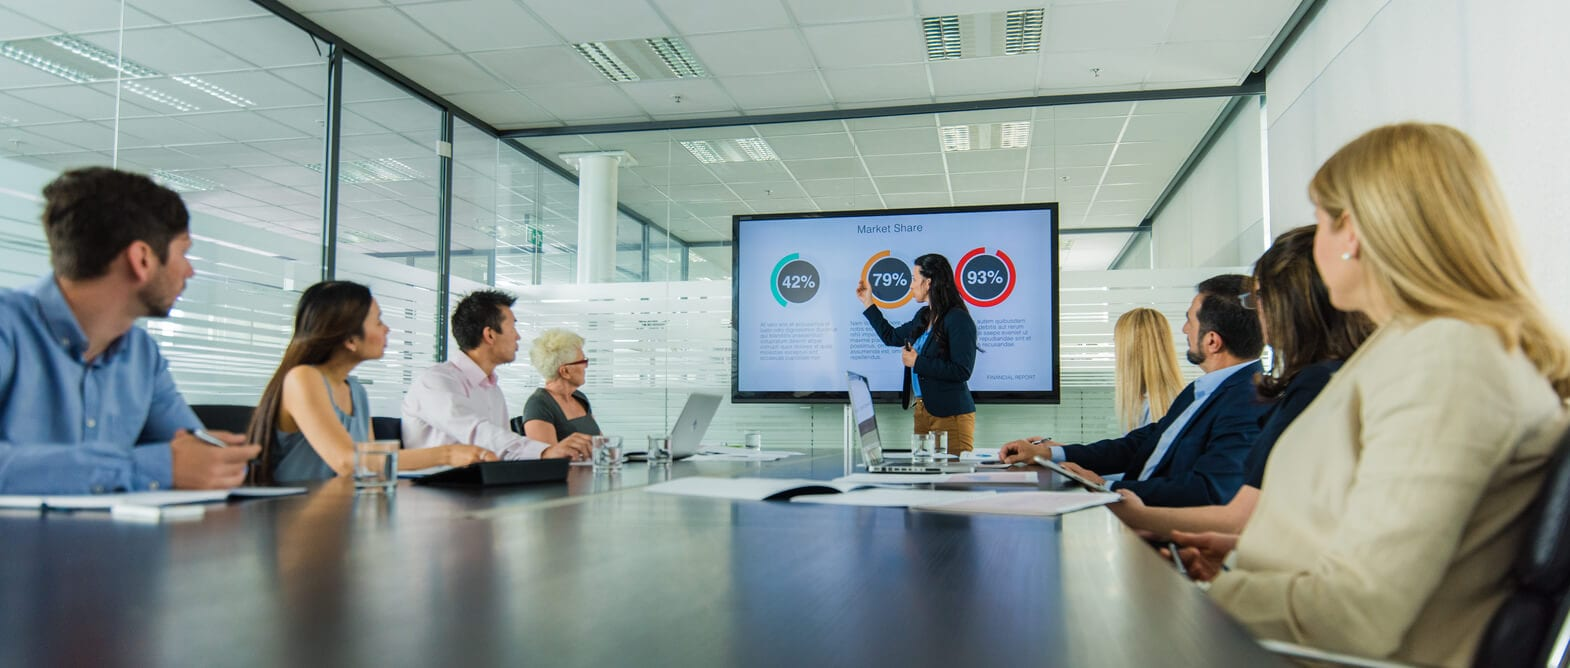 businesswoman gives presentation on reducing lost productivity with knowledge management